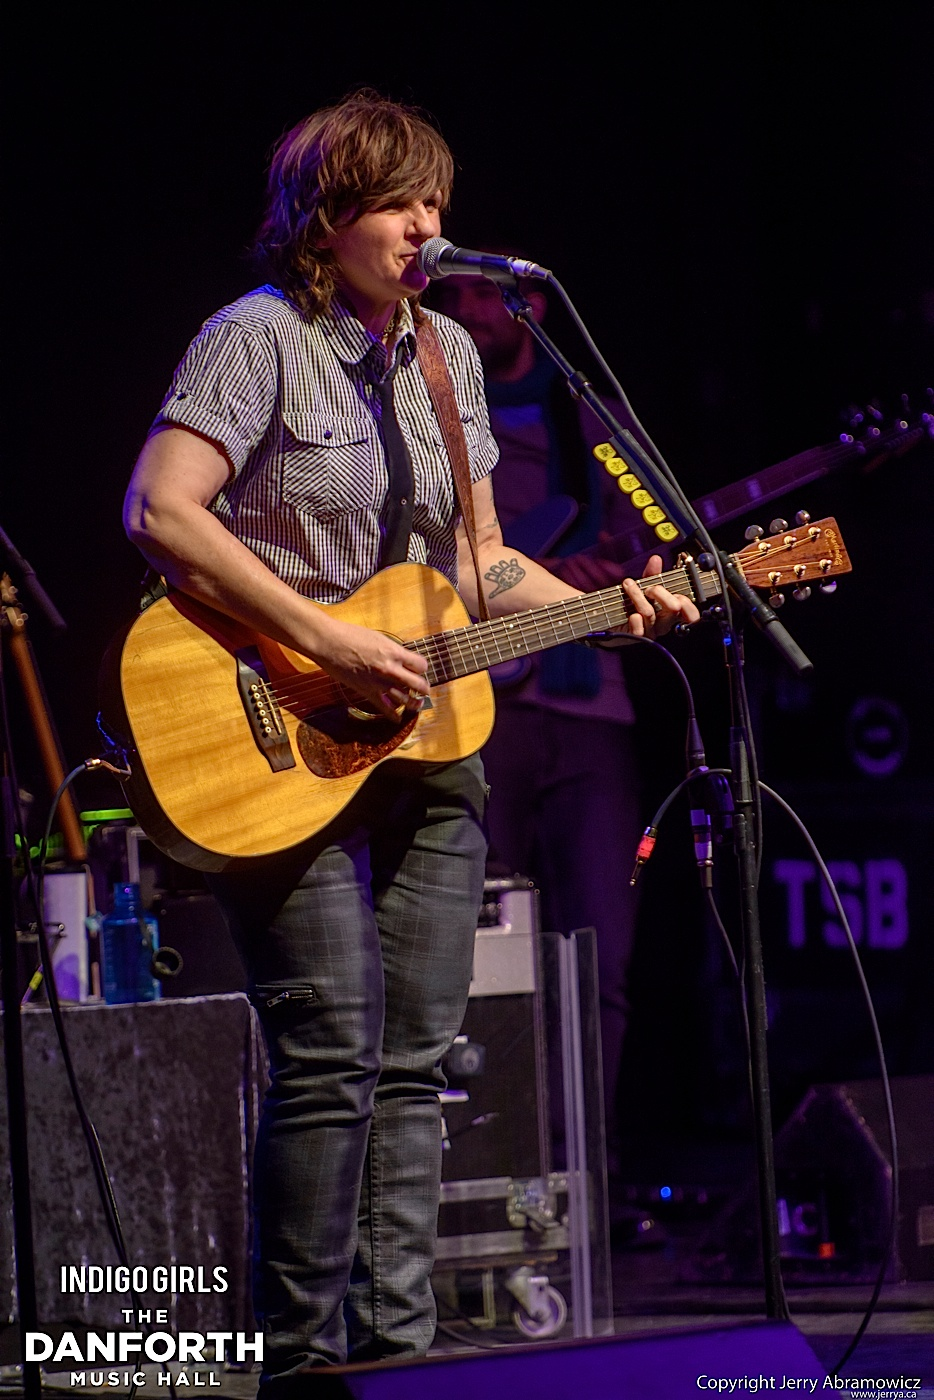 Indigo Girls play to a packed house at The Danforth Music Hall